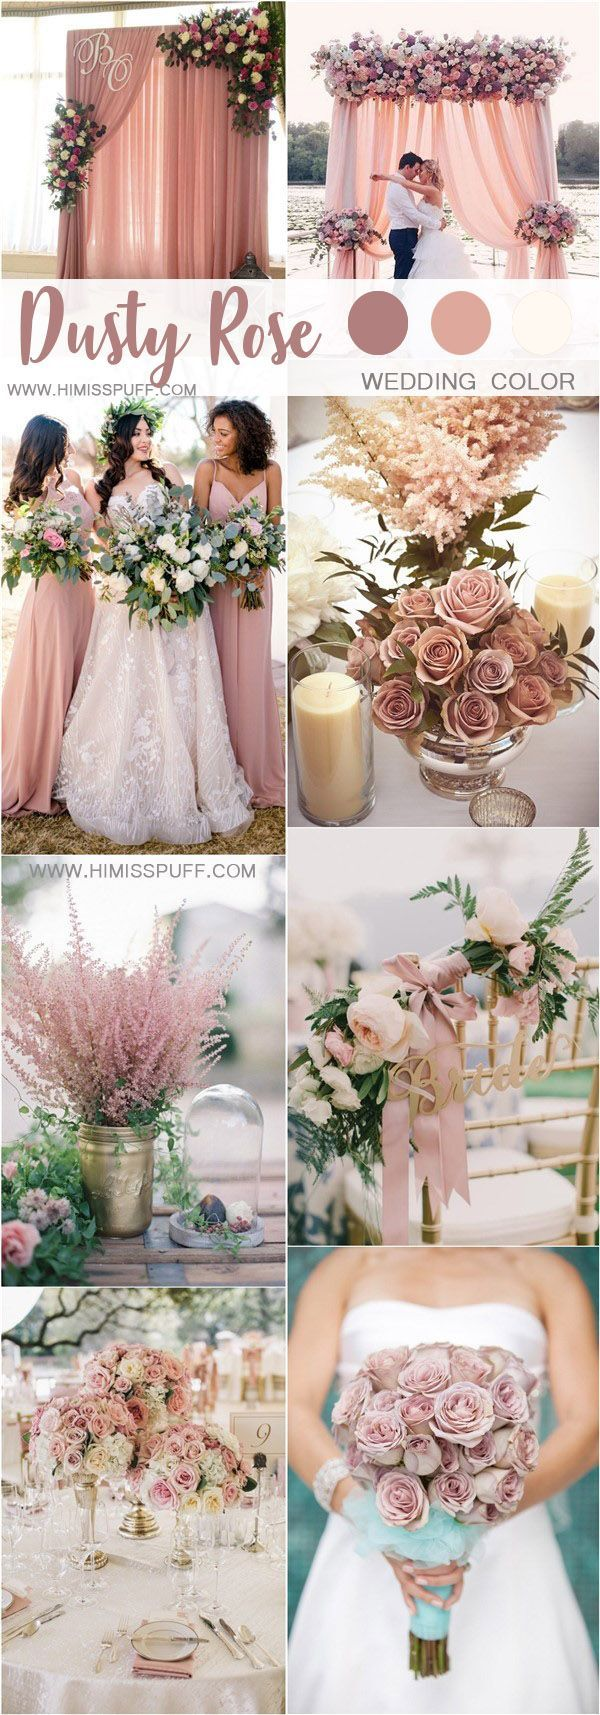 30+ Trendy Dusty Rose Wedding Color Ideas